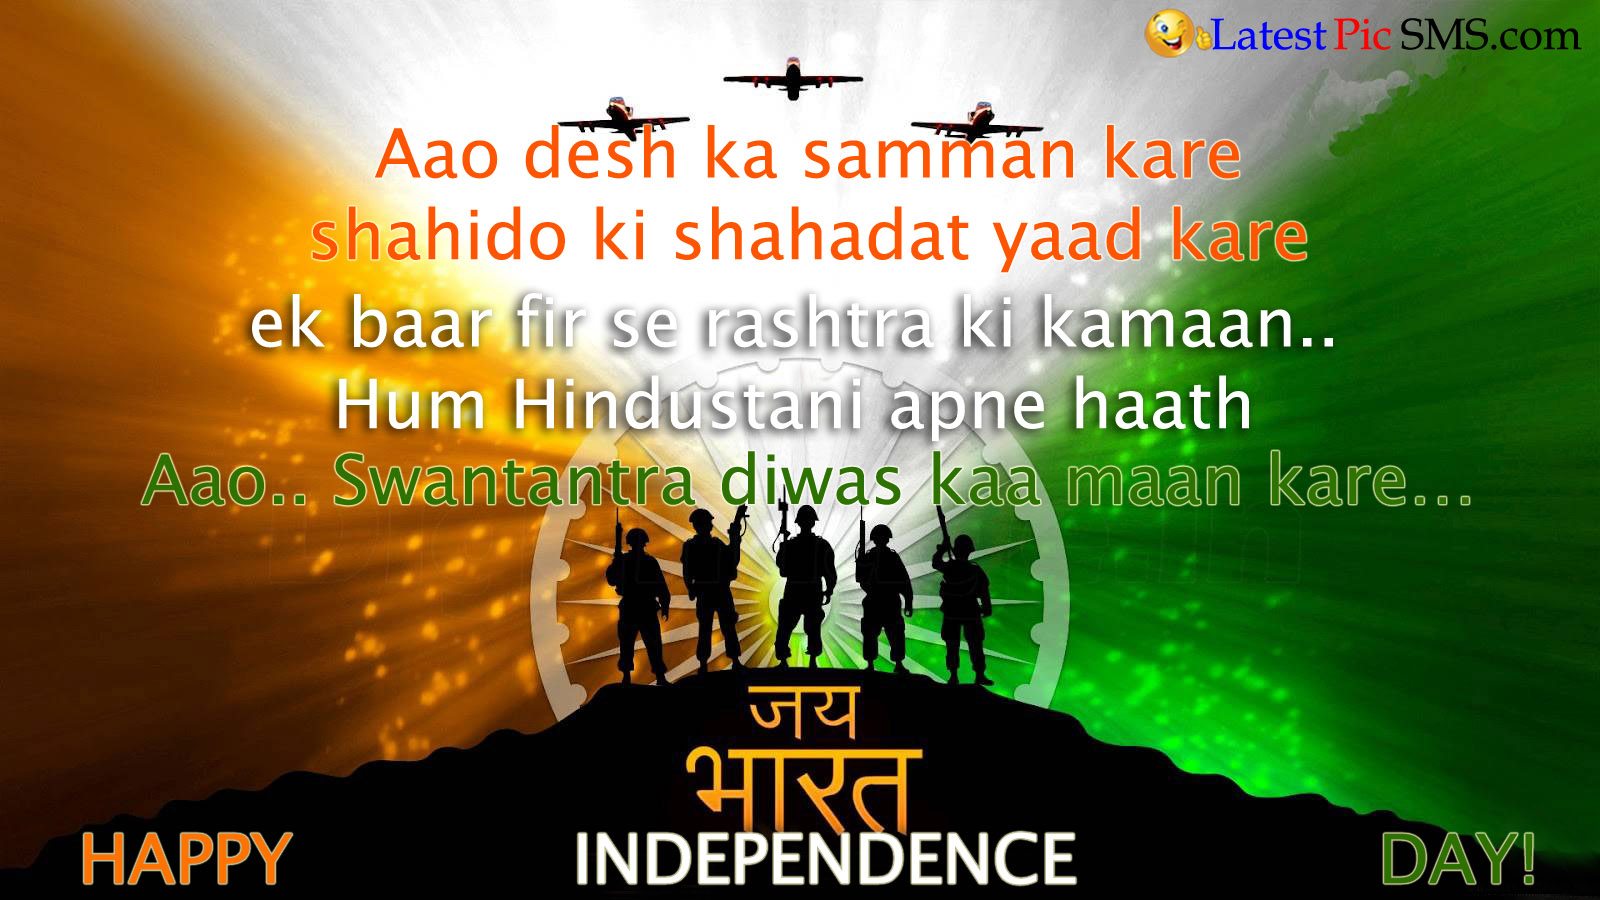 Jay javan jay kissan independence day pictures speech